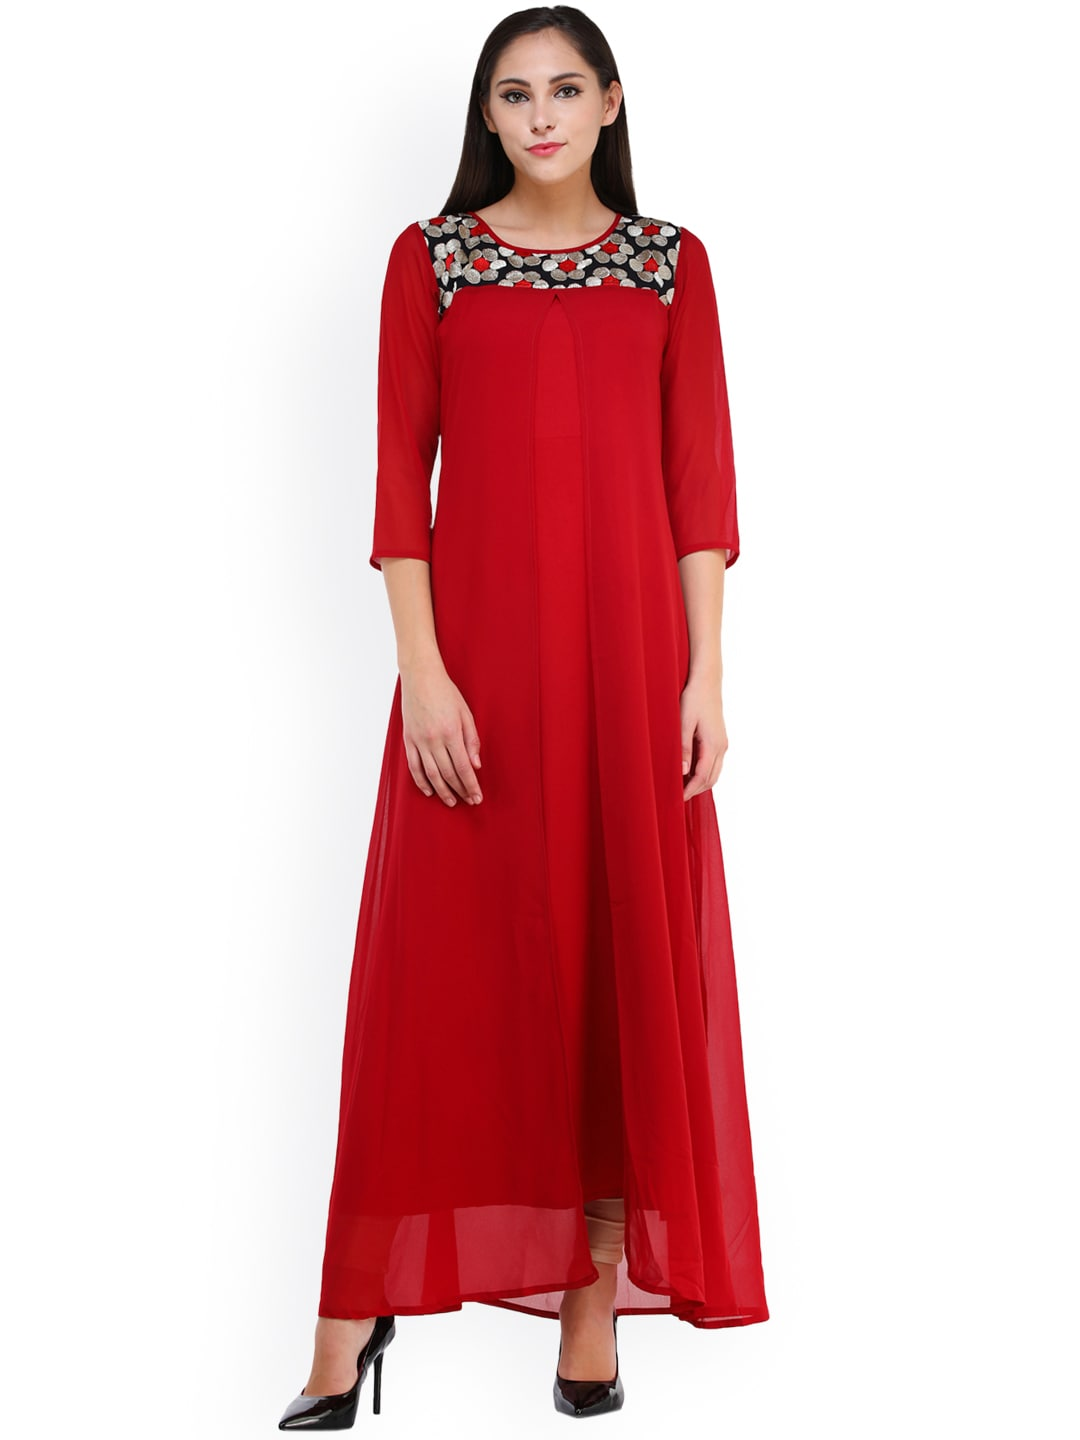 Long Dresses - Buy Maxi Dresses for Women Online in India - Upto 70% OFF 909dc4462